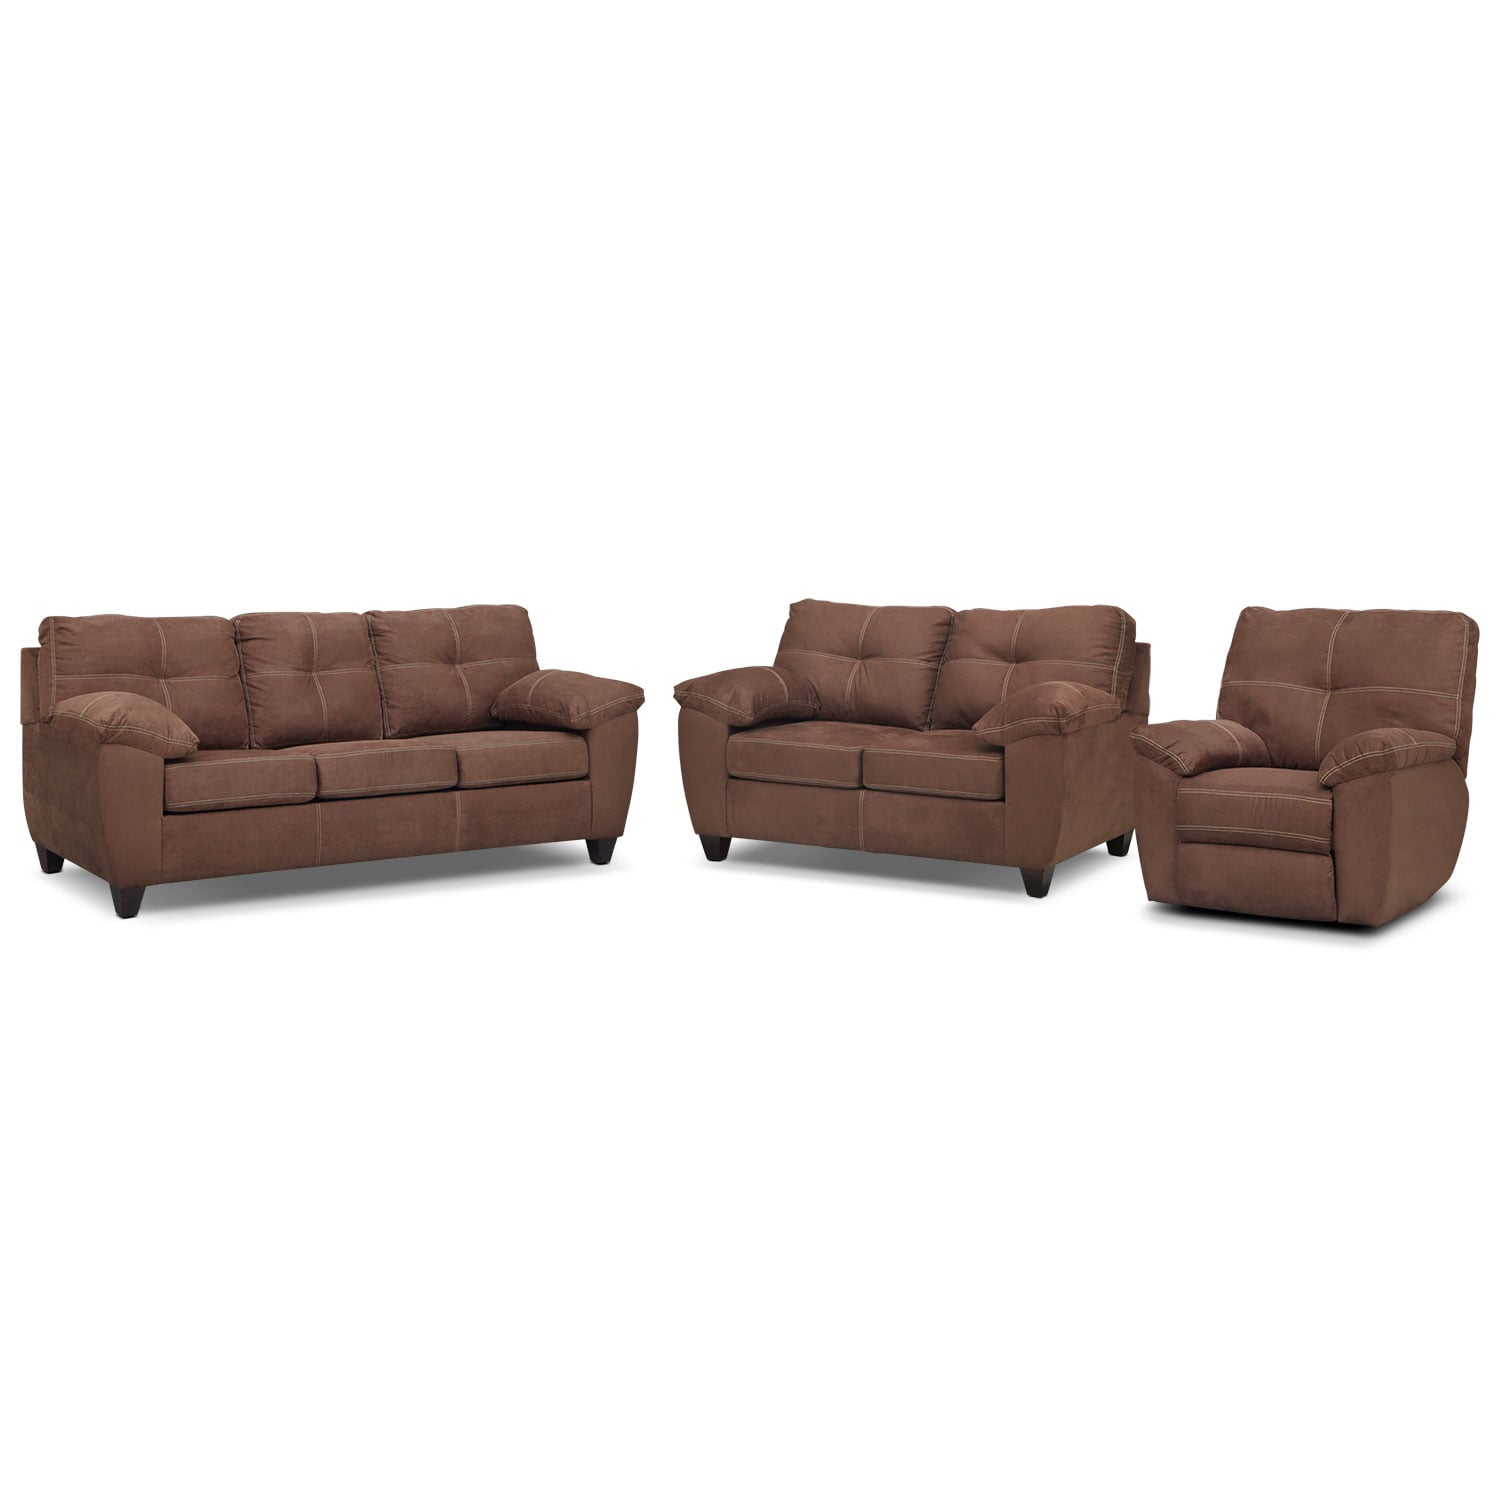 Rialto Sofa, Loveseat and Glider Recliner Set - Coffee